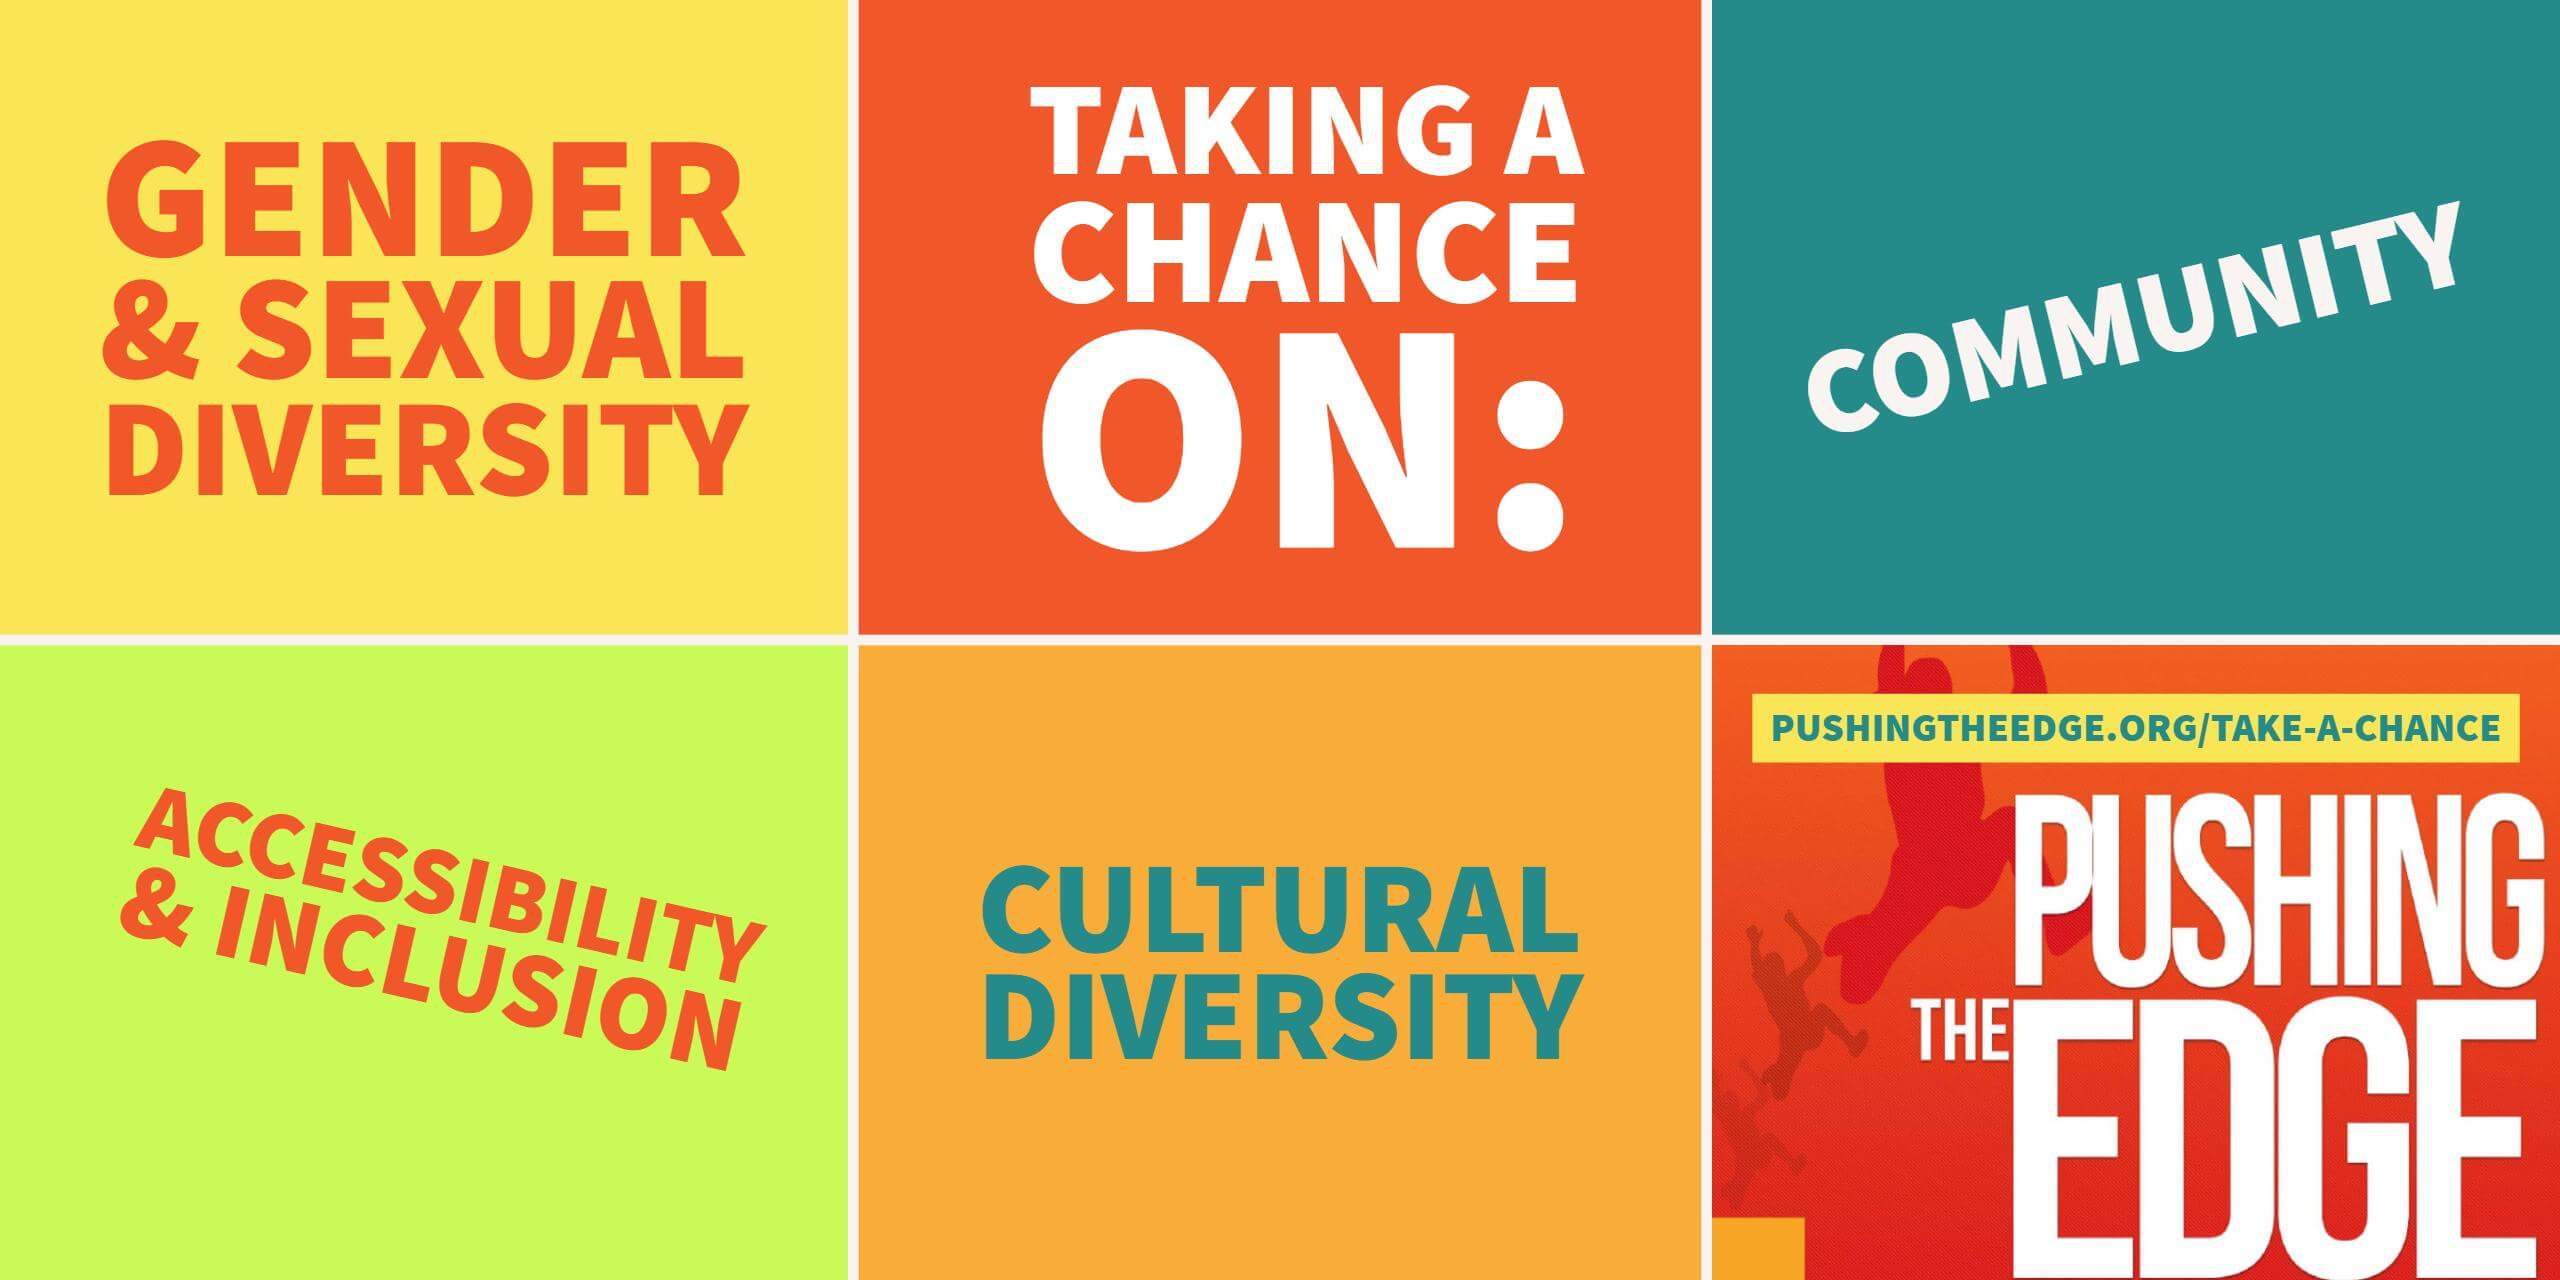 6 boxes with different text in each. Taking a chance on - gender and sexual diversity, accessibility and inclusion, community and cultural diversity